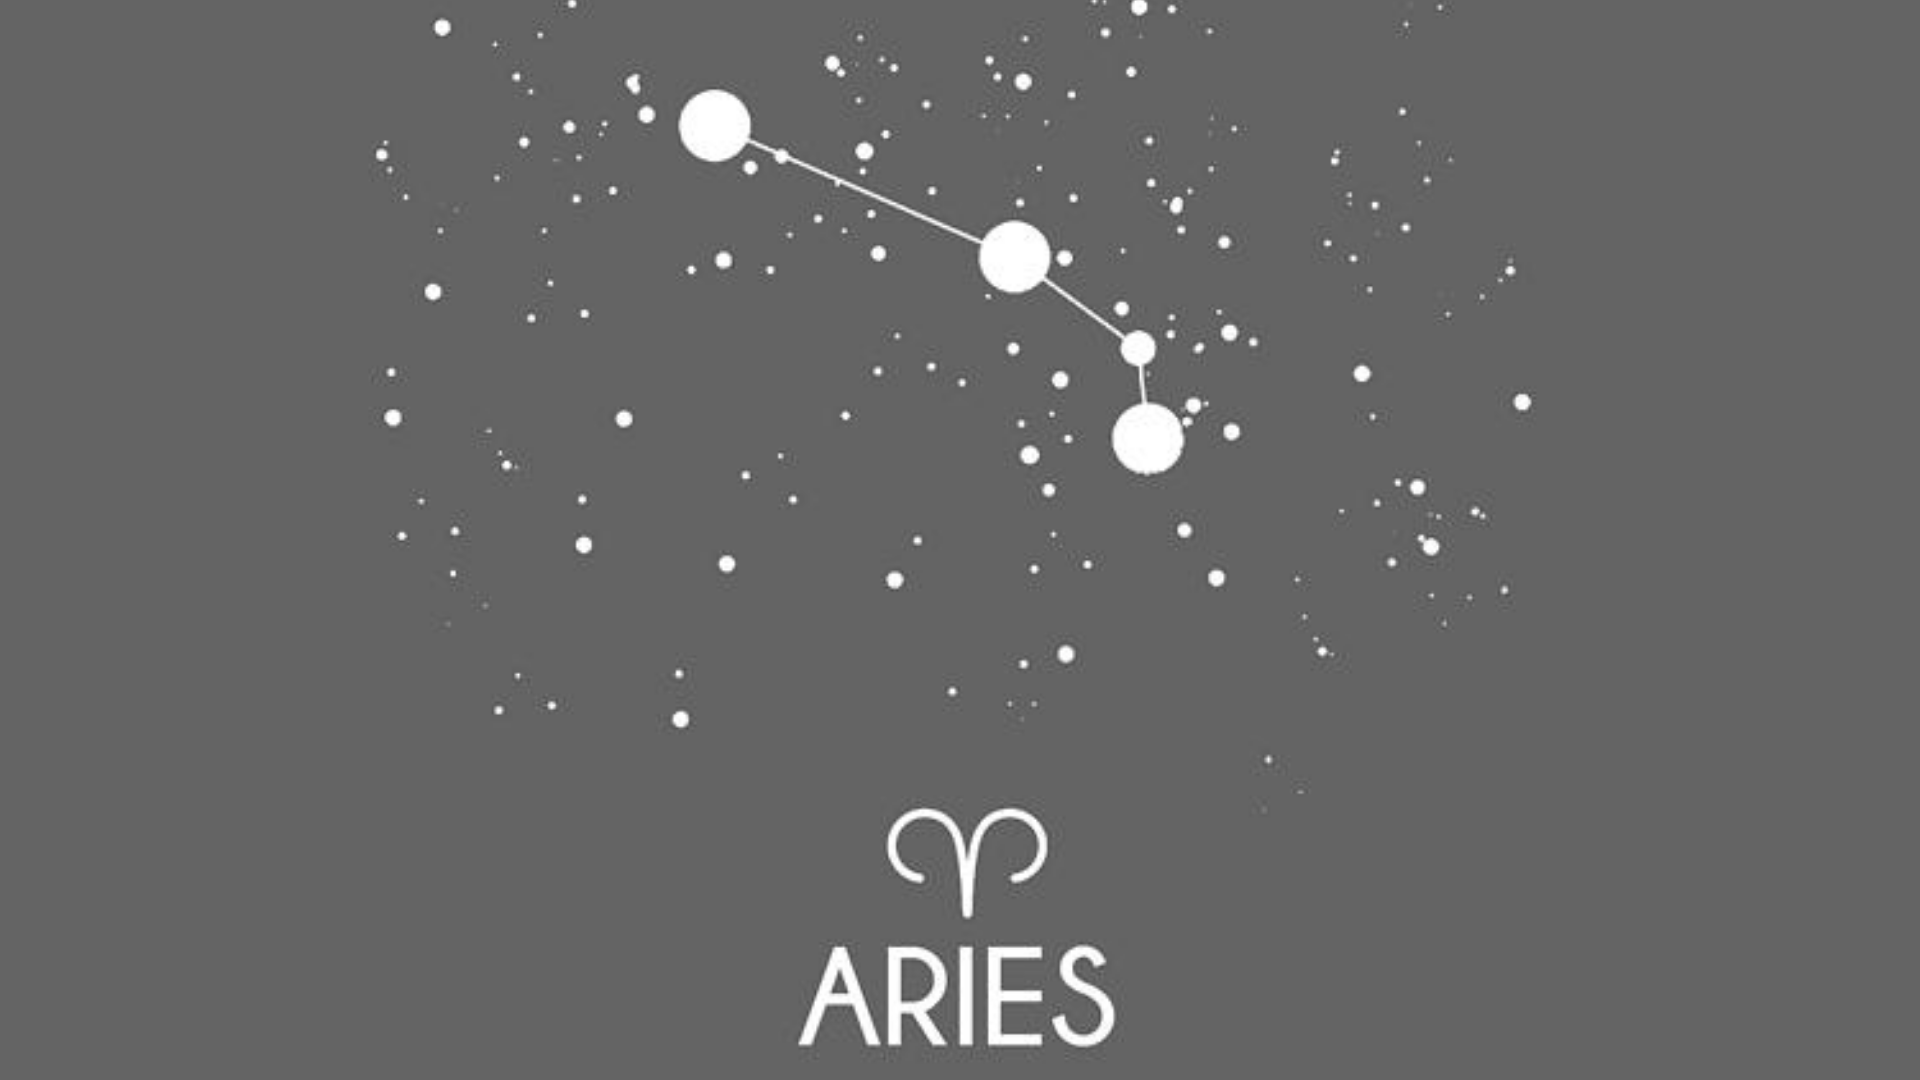 ARIES Yearly Horoscope 2022 - Astrological Prediction for Love, Career, Money and Health